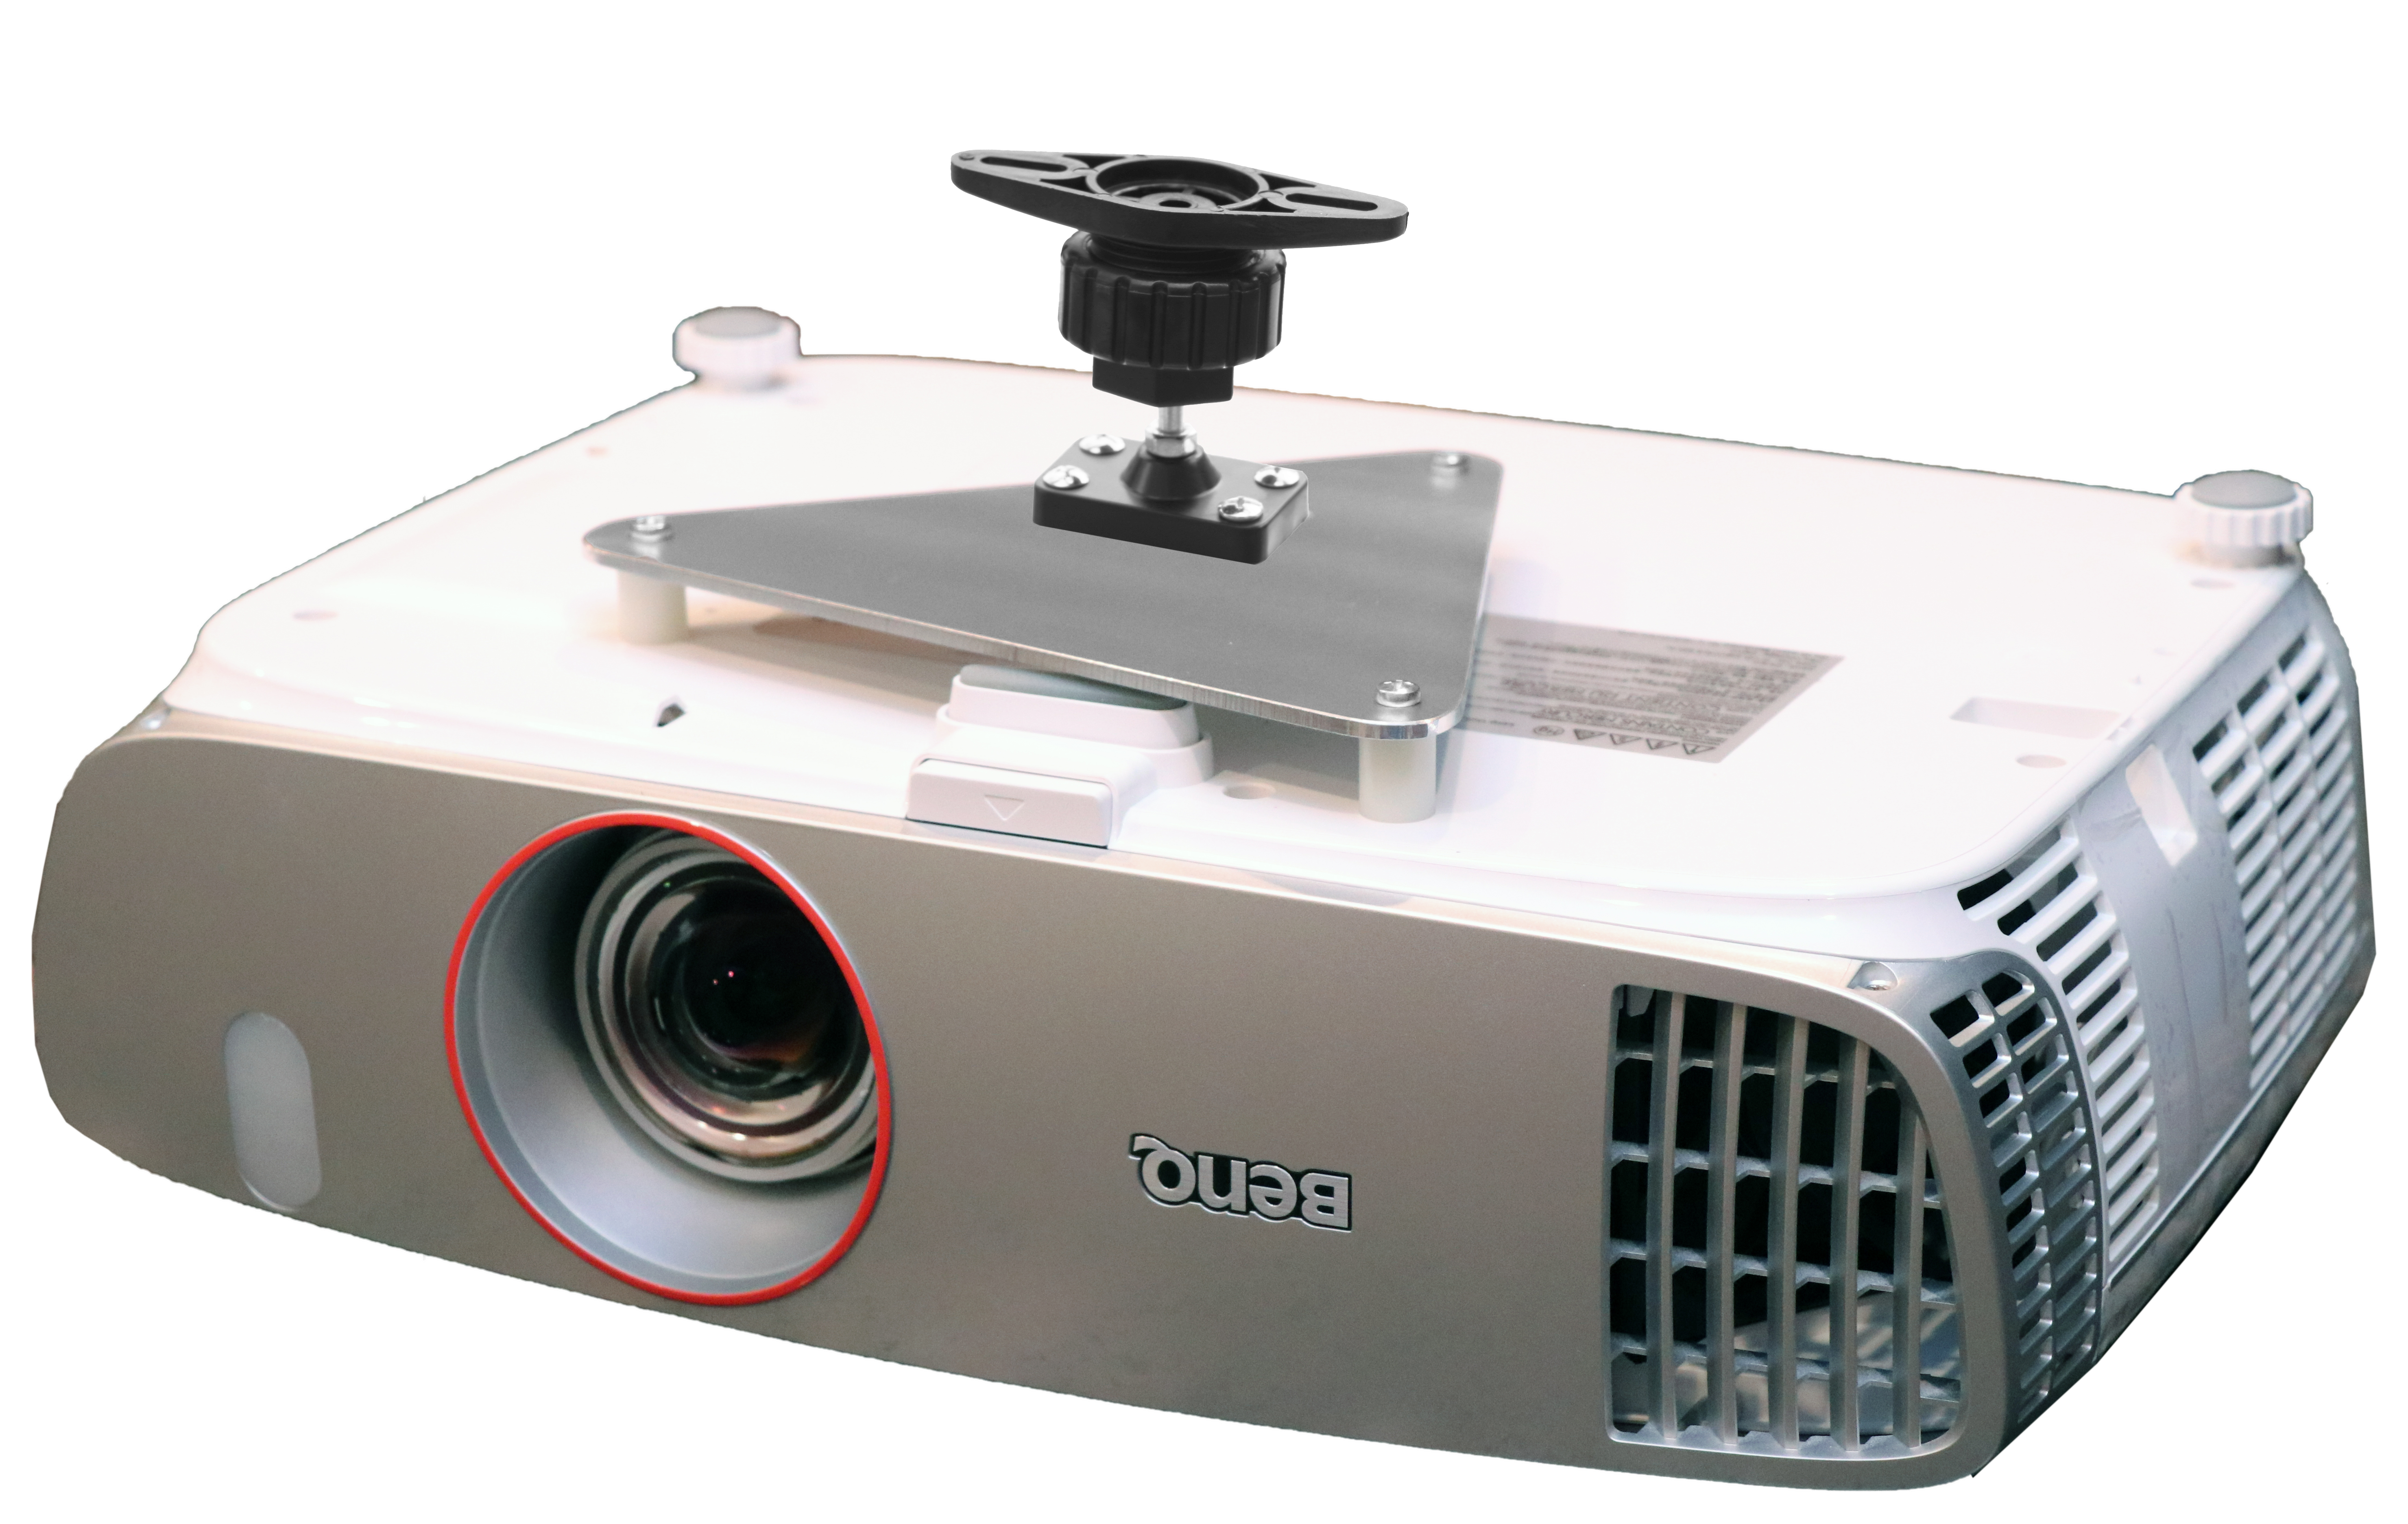 Projector Ceiling Mount For Benq Ht2050 Ht2050a Ht2150st